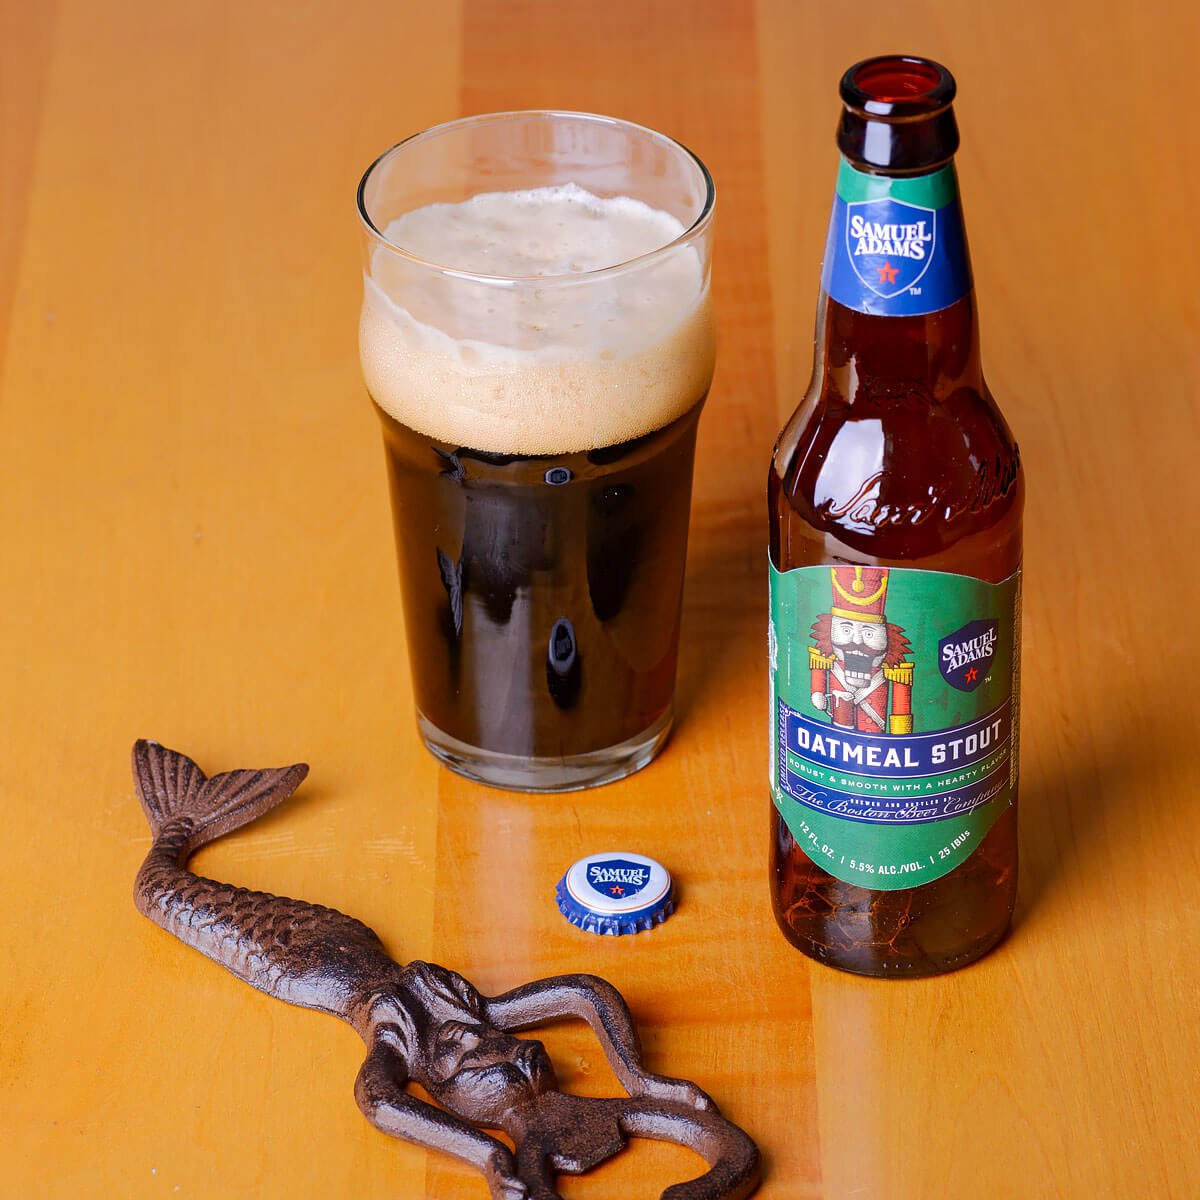 Samuel Adams Oatmeal Stout, an English-style Oatmeal Stout brewed by the Boston Beer Company